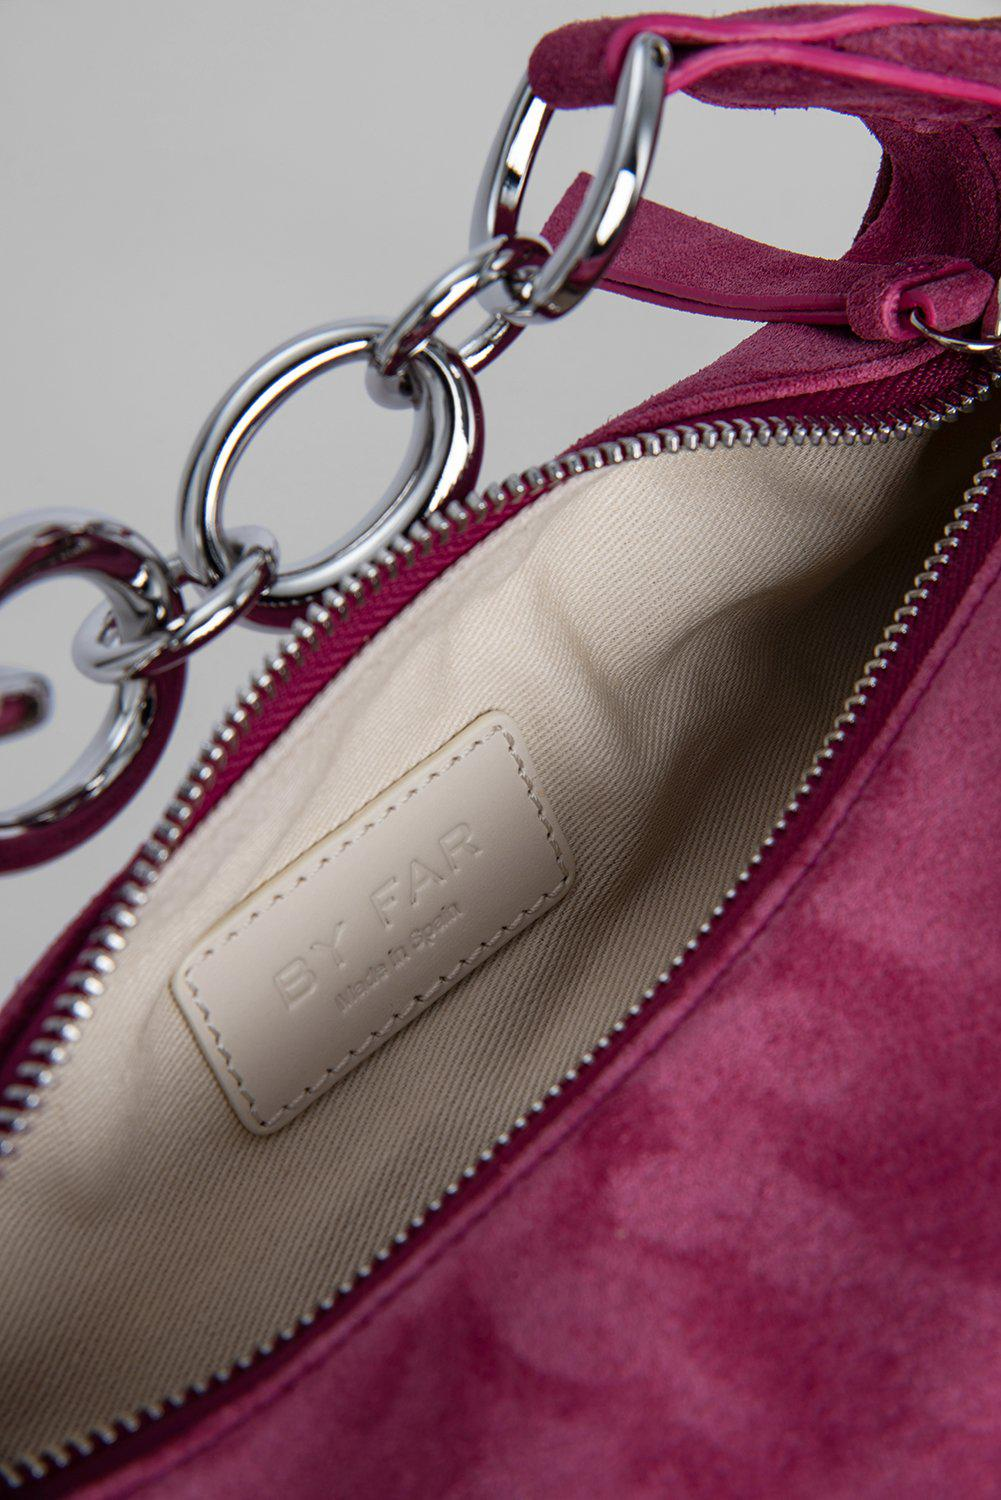 Bougie Fuchsia and Dark Brown Suede Leather 5